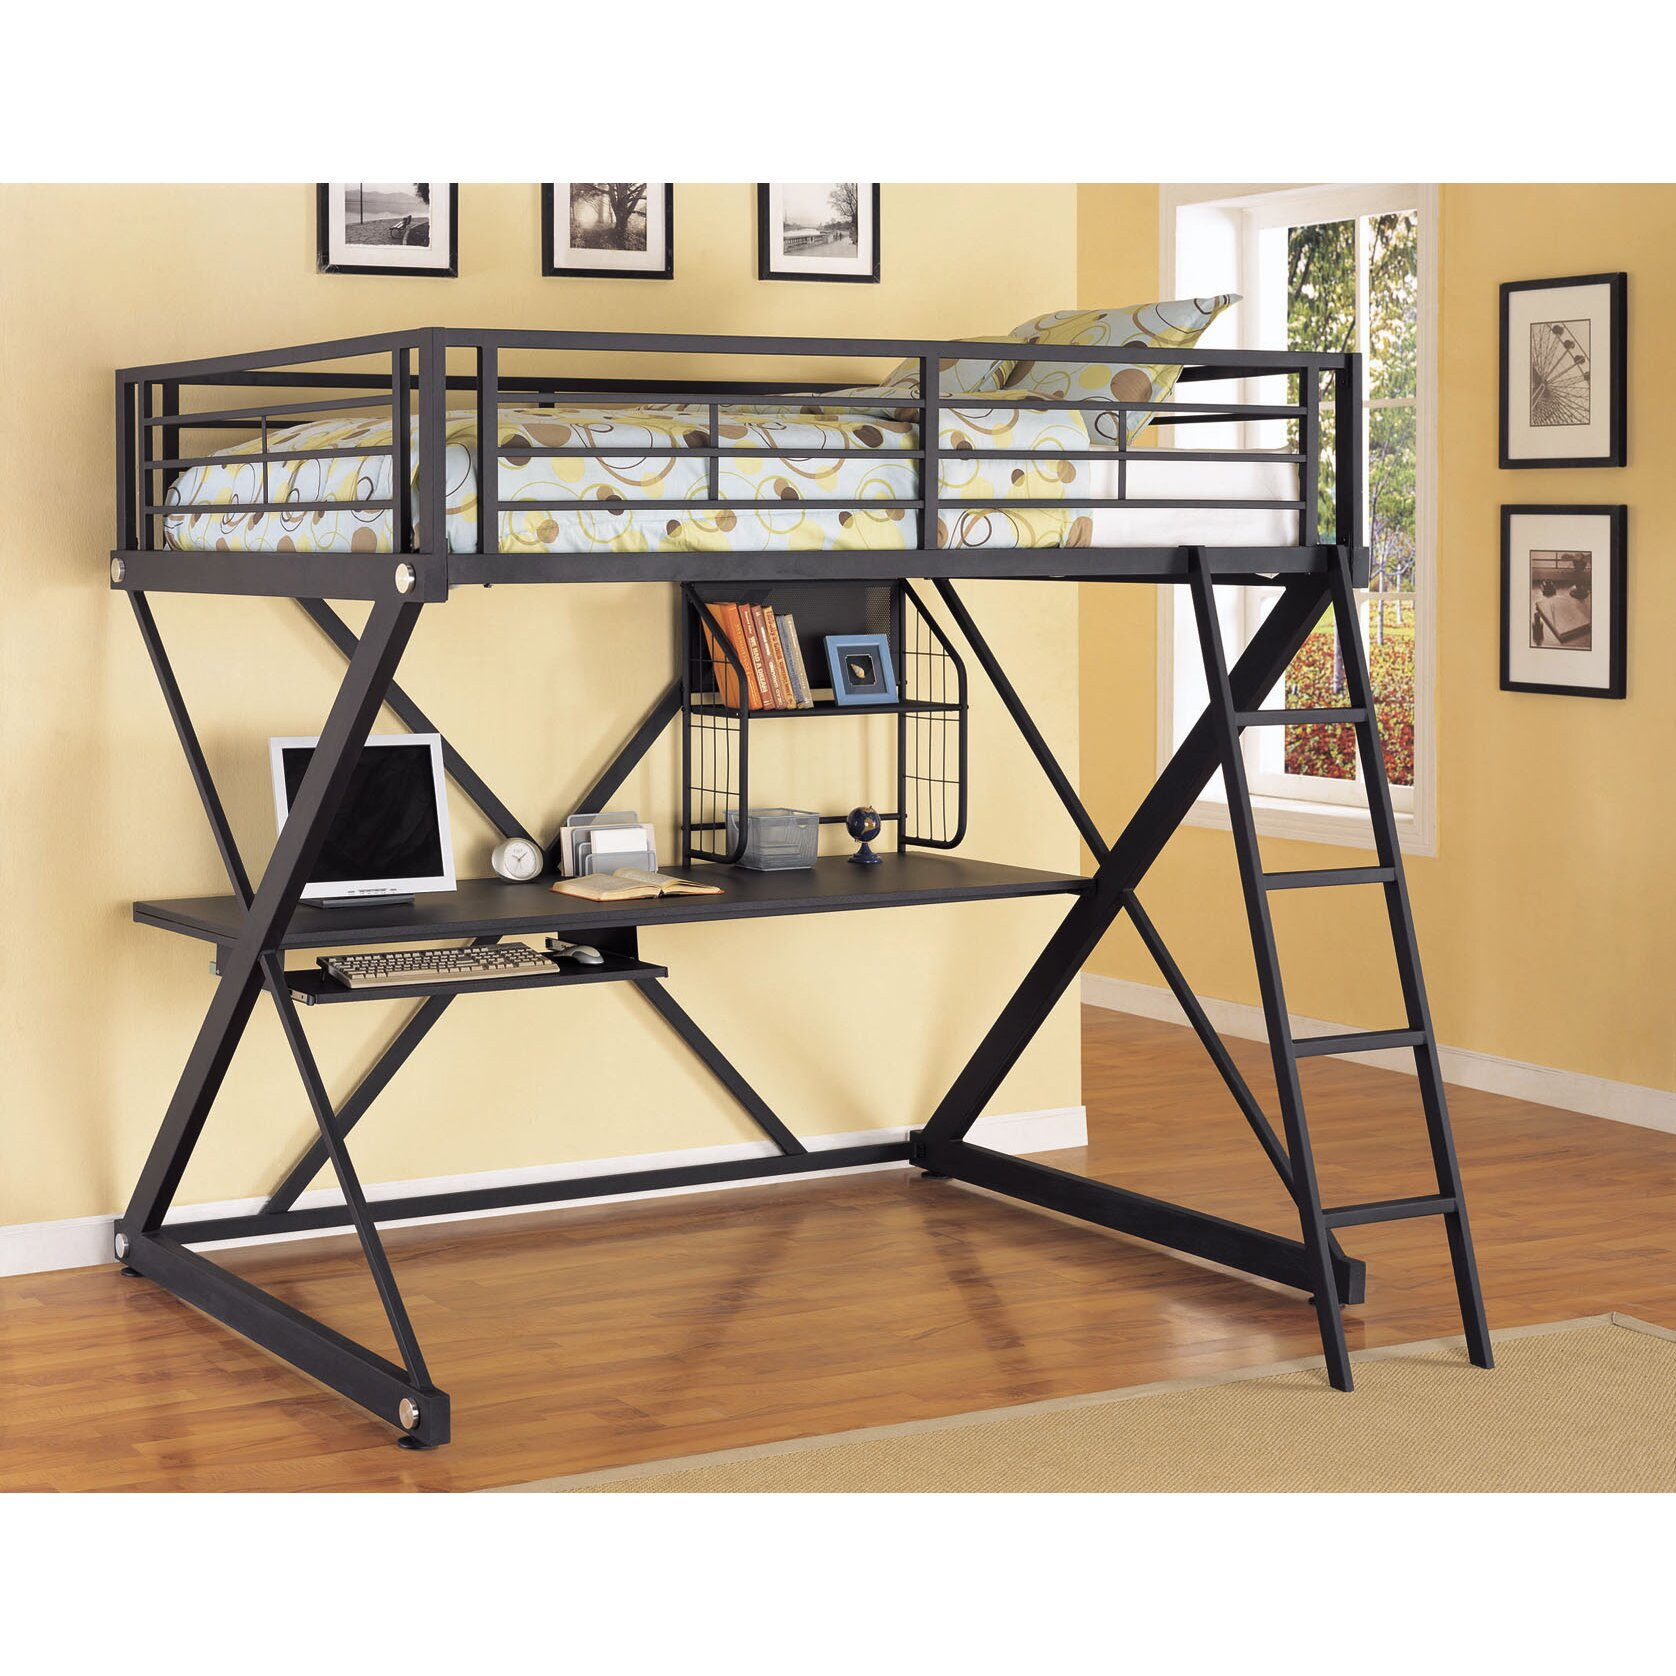 Bunk beds for adults with desk - Z Bedroom Full Over Full Loft Bed